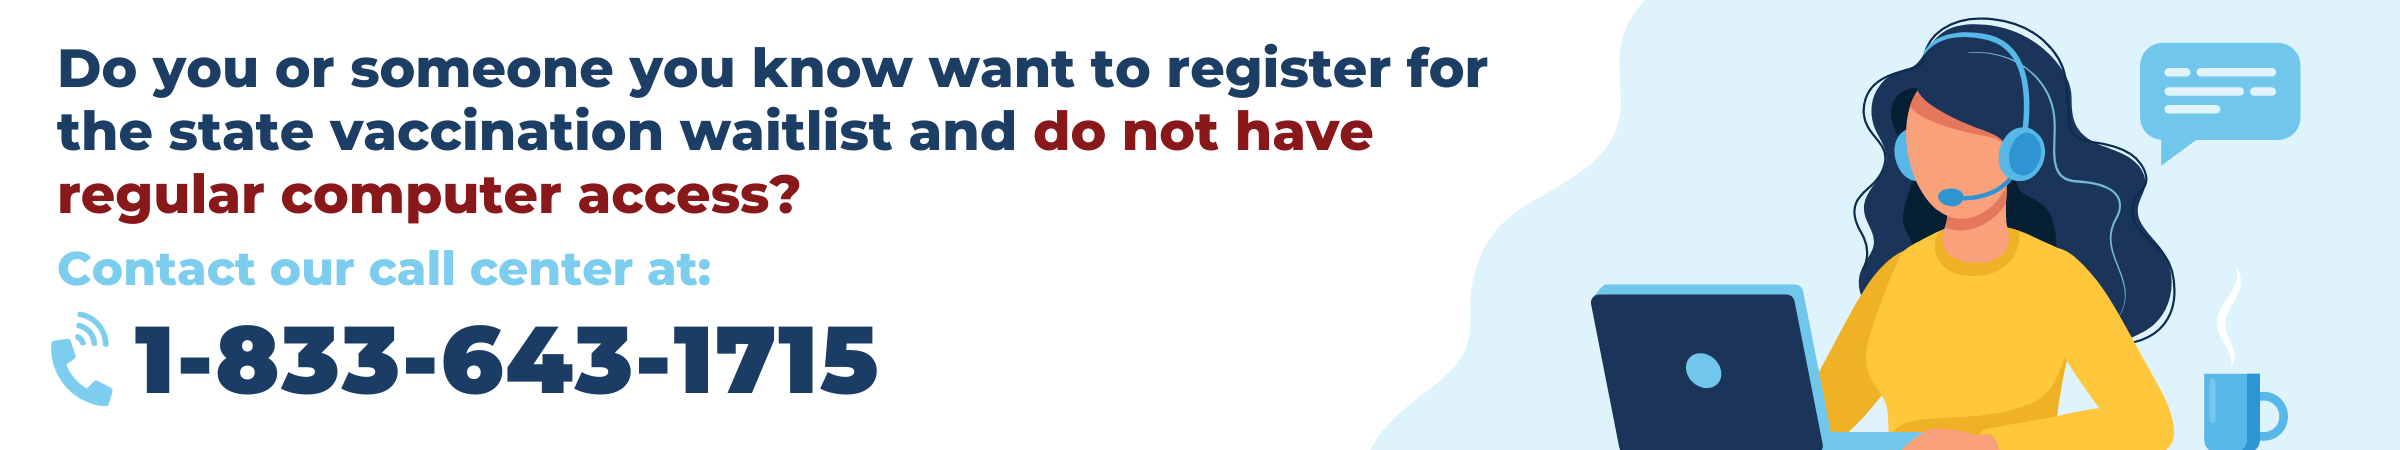 Do you or someone you know want to register for the state vaccination waitlist and do not have regular computer access? Contact our call center at 1-833-643-1715